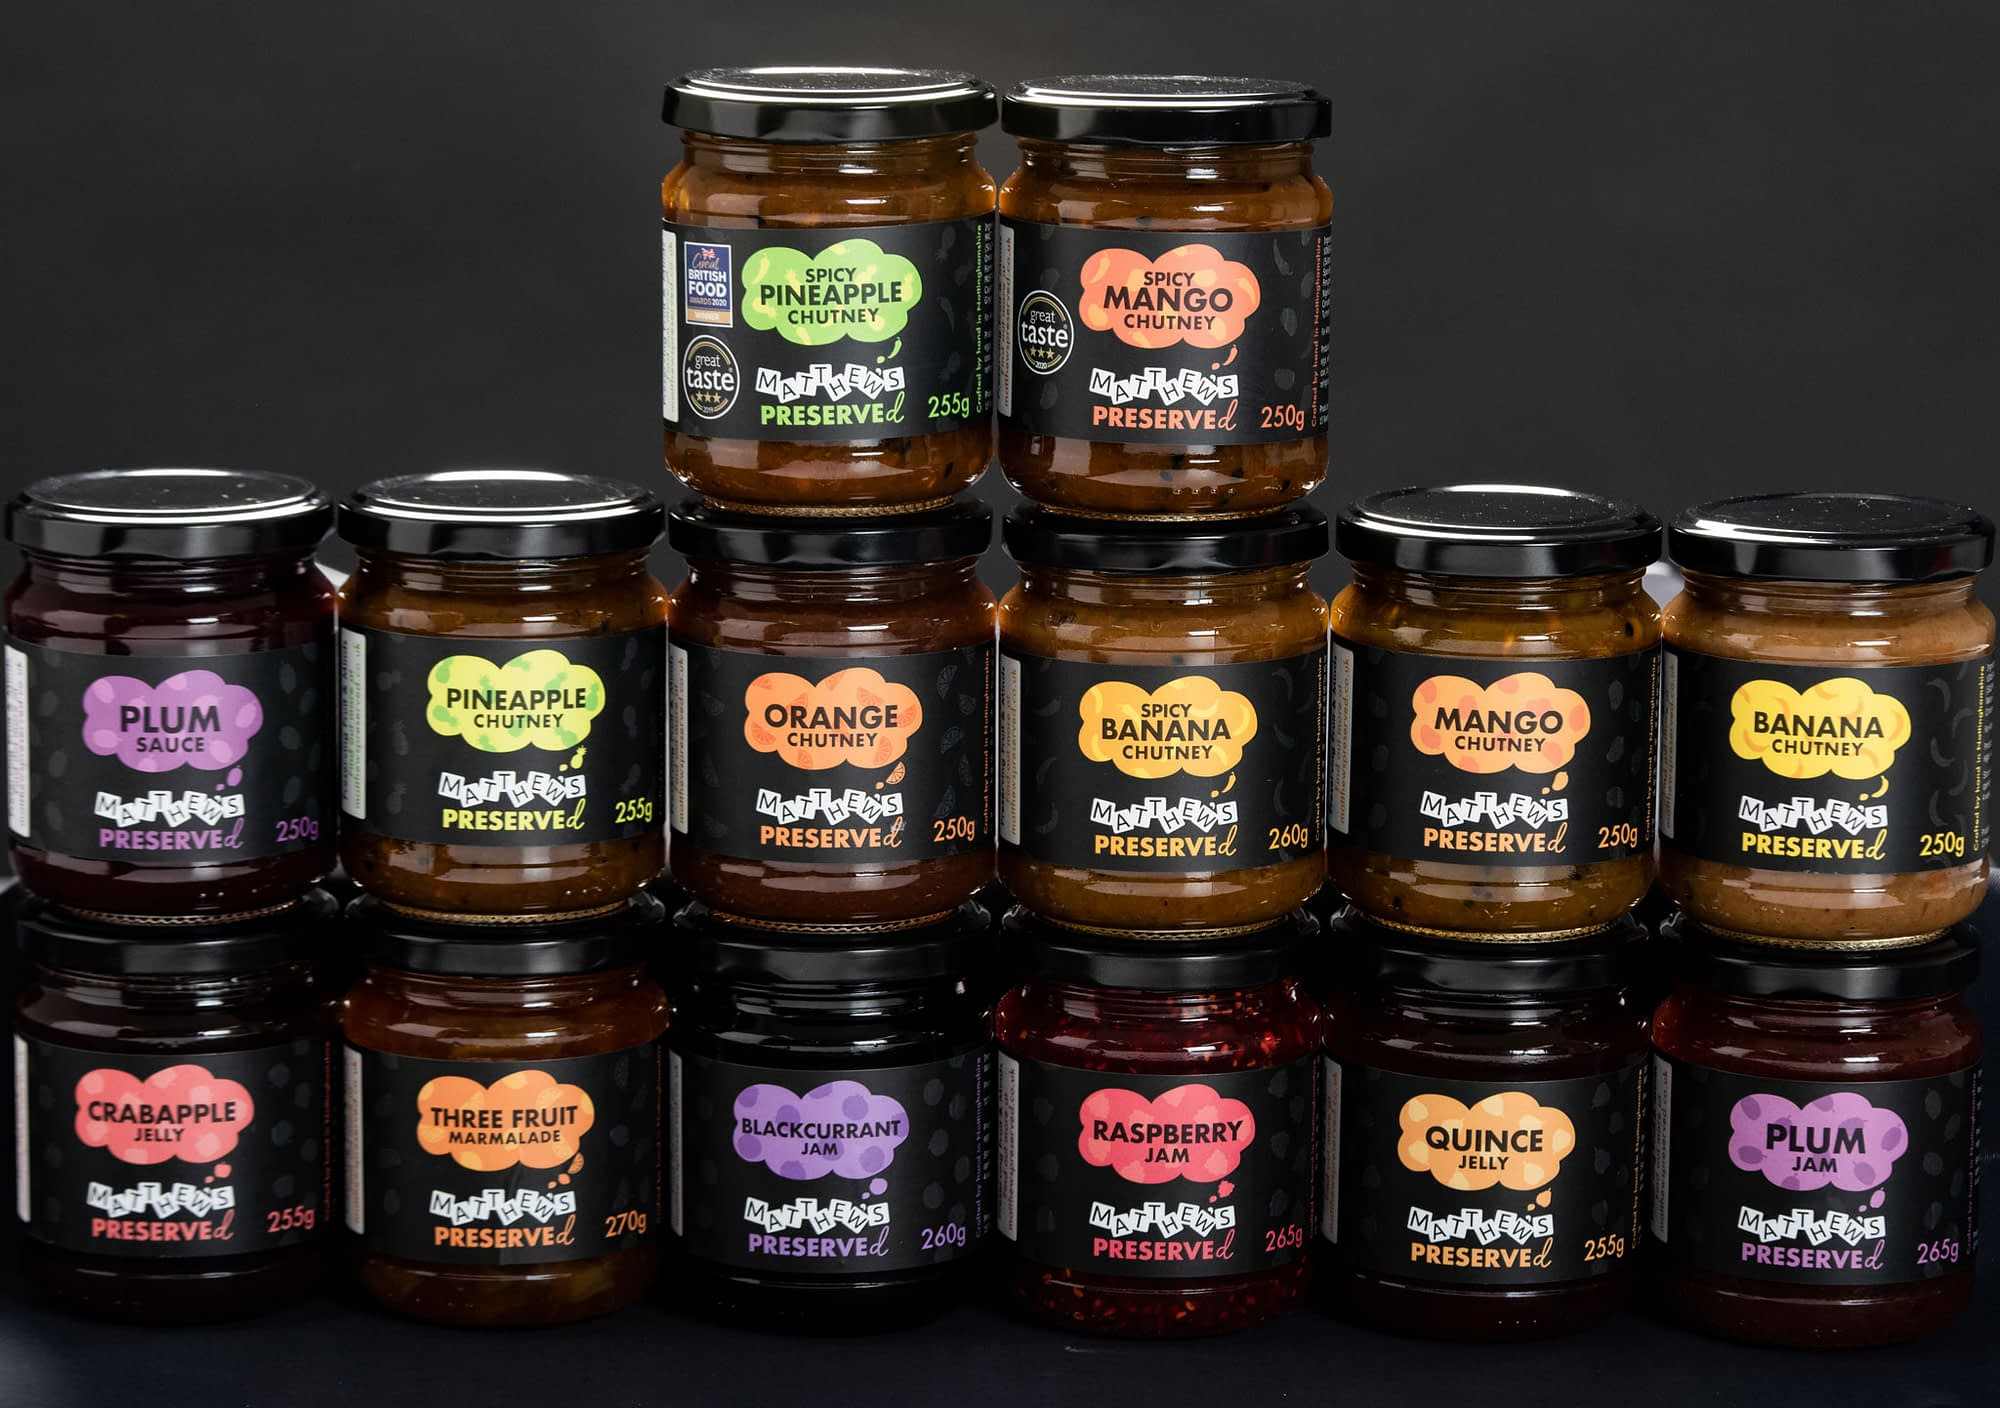 All Matthew's Preserved Products